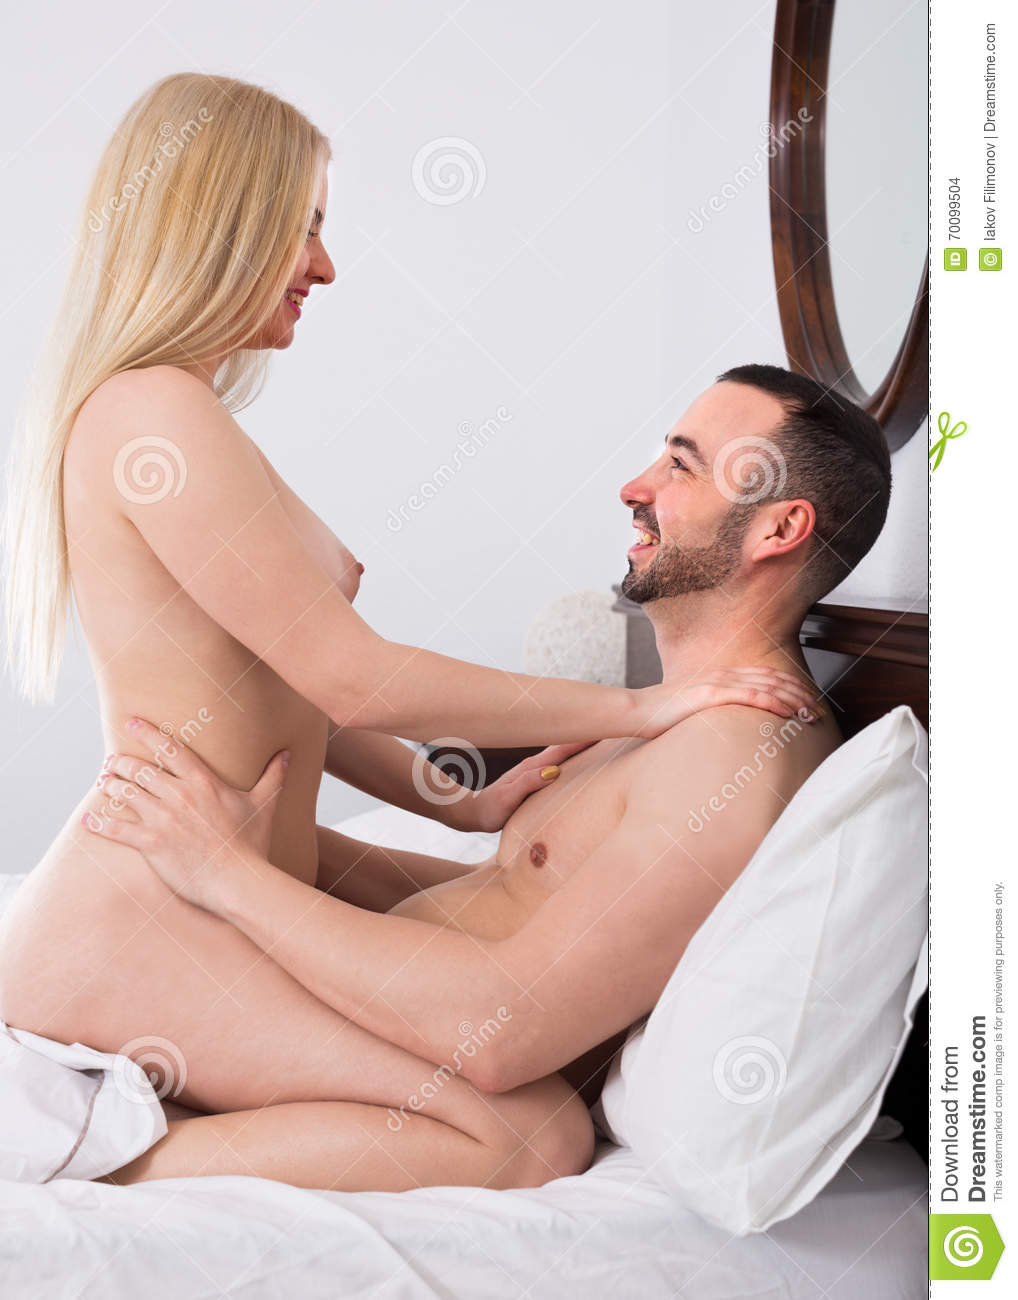 Porn Having Sex 71